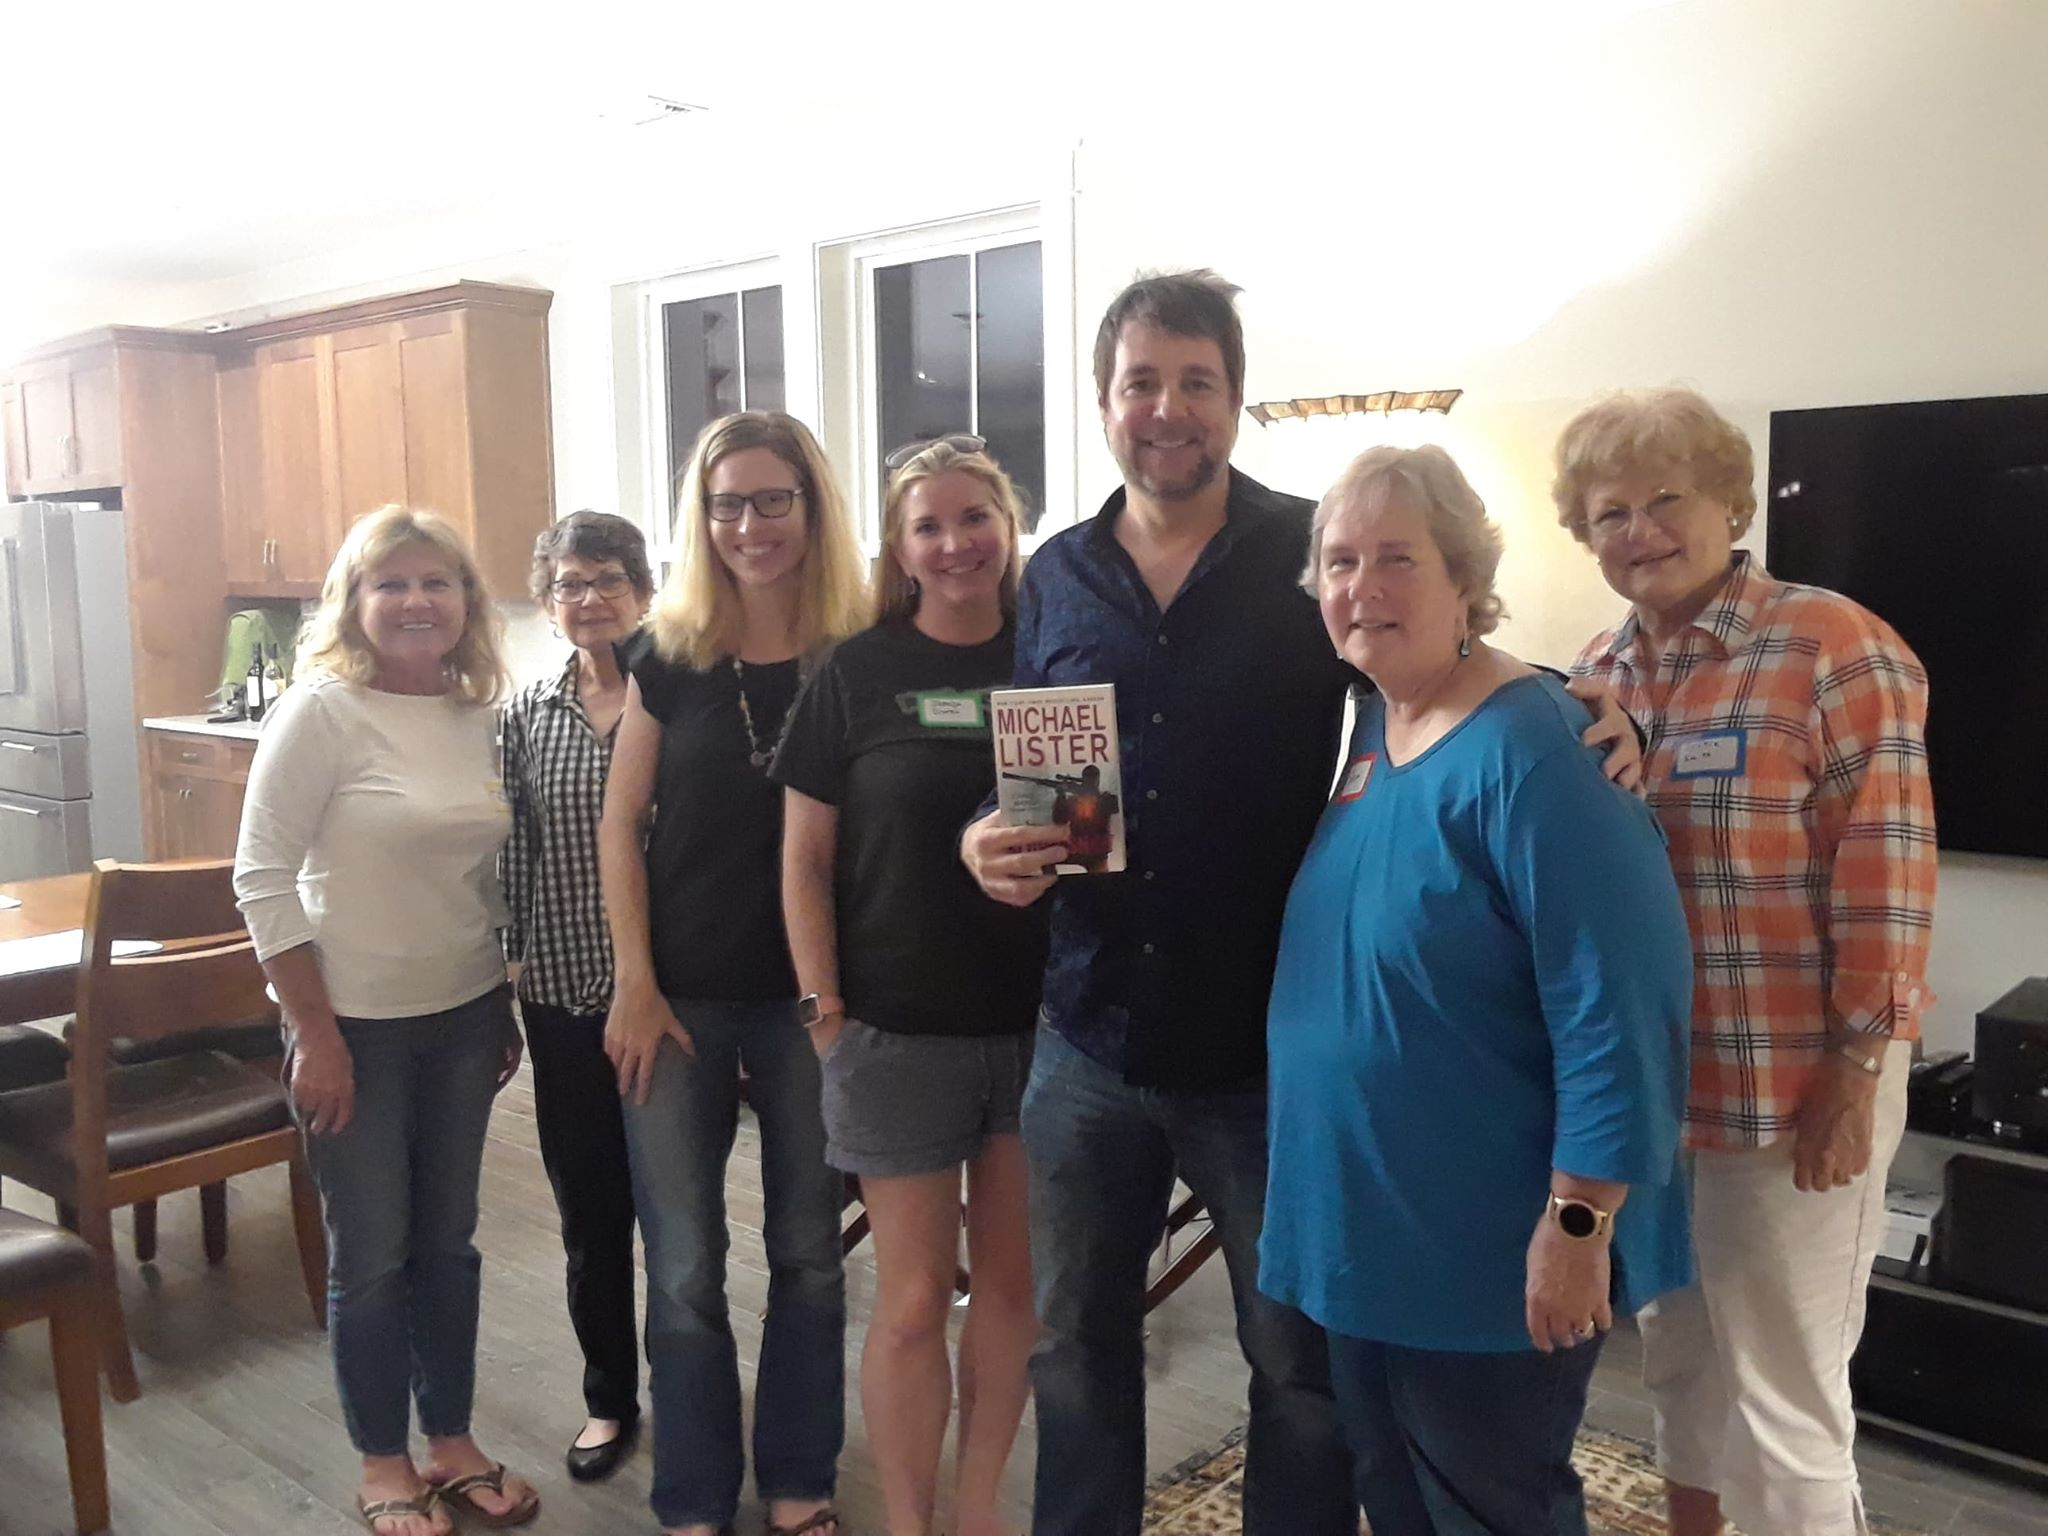 Speaking to a book club in Panama City, FL.